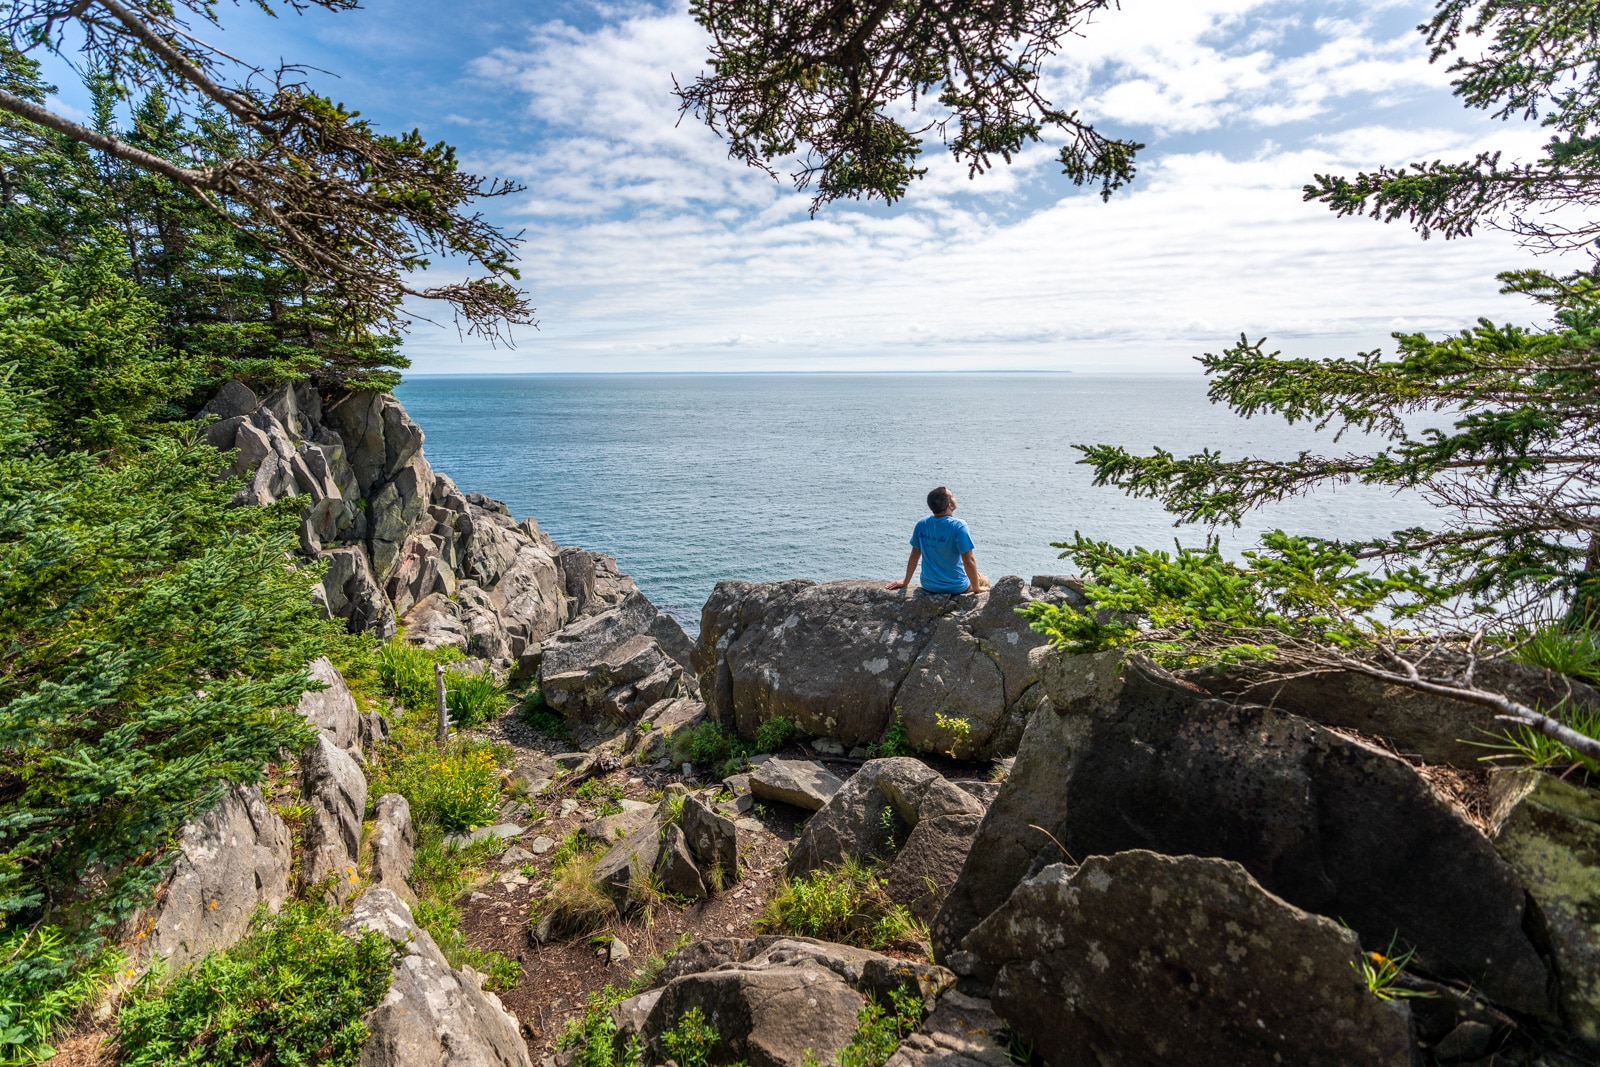 Brother enjoying sun and views at Cutler Public Lands in Lubec, Maine